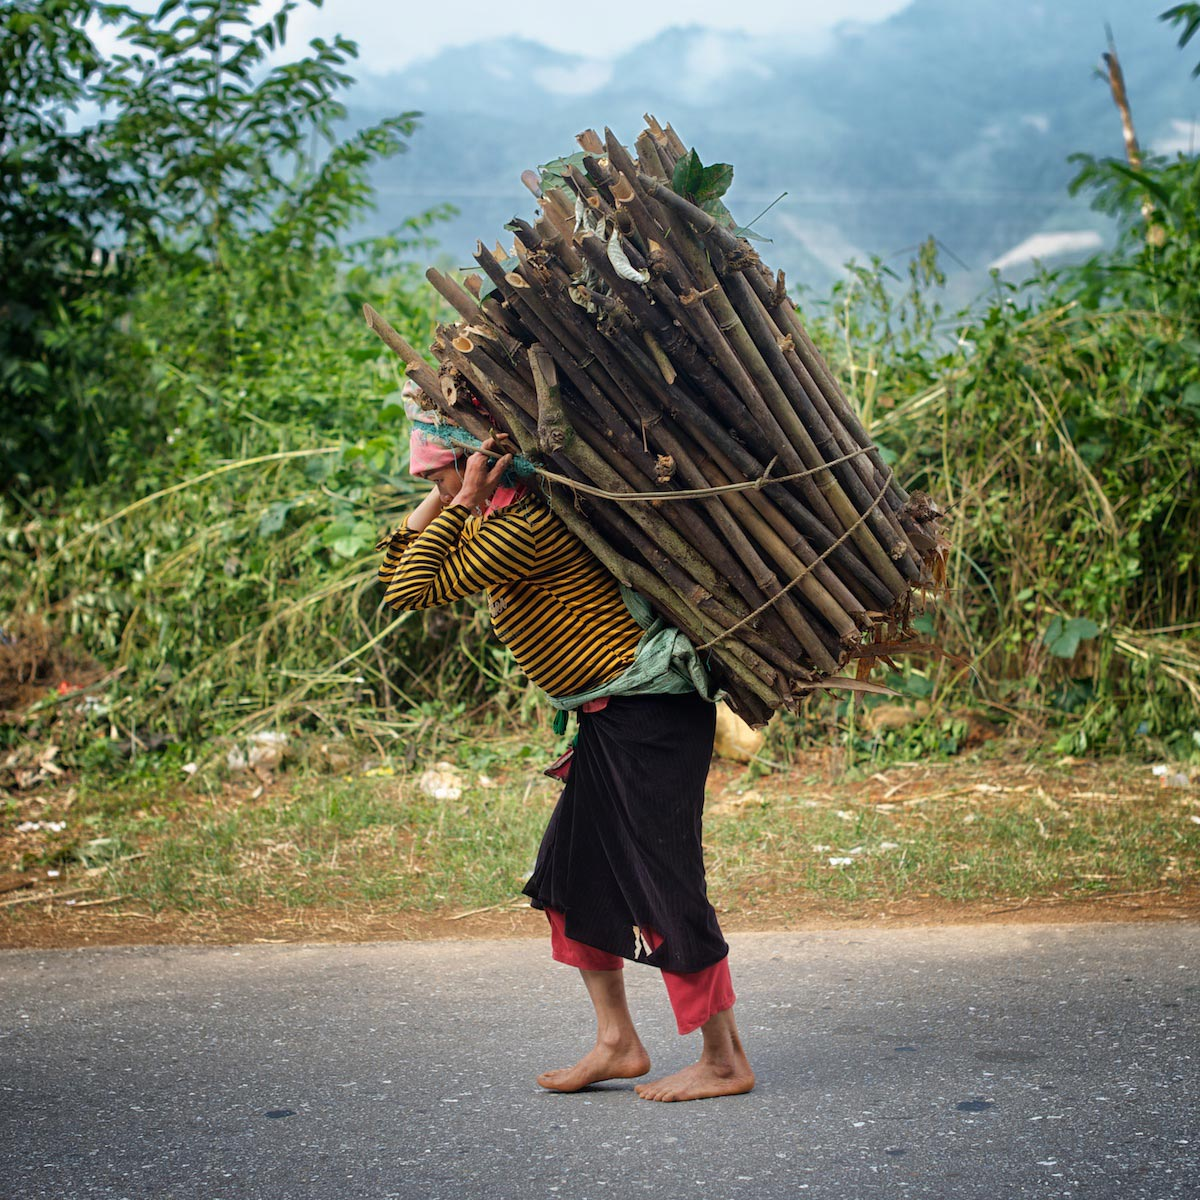 Ha-Giang-carrying-wood-2.jpg